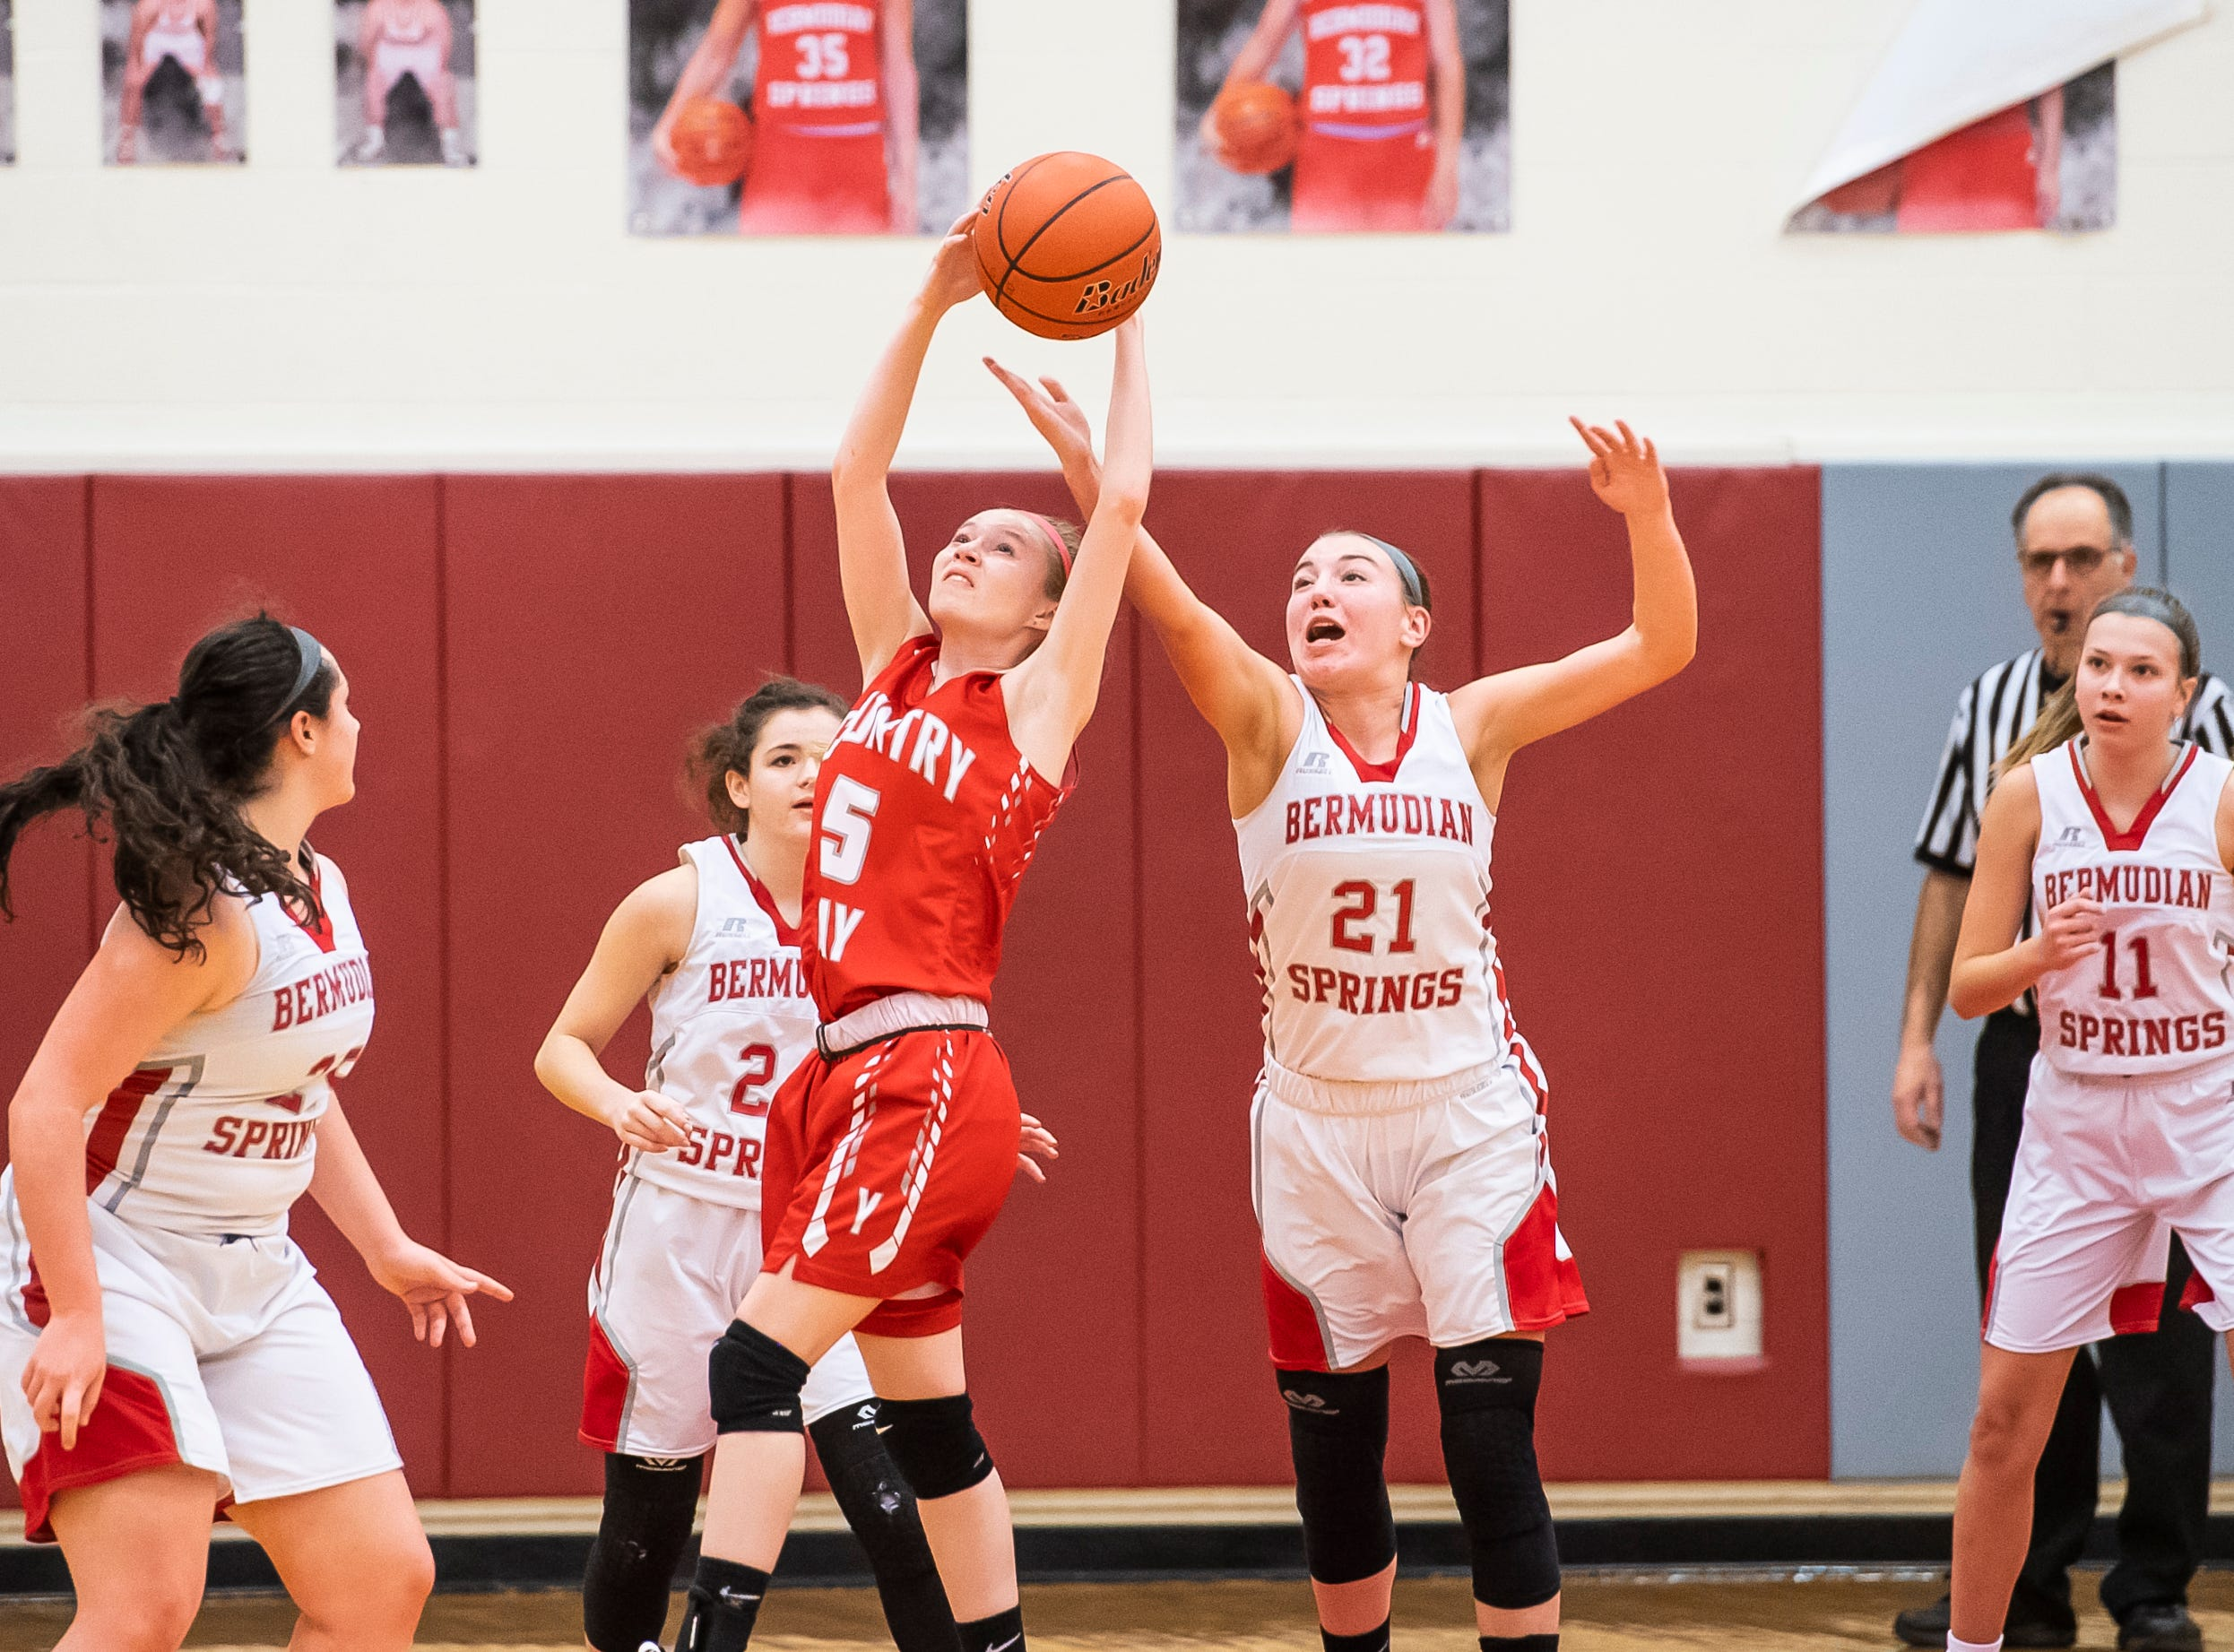 Bermudian Springs' Keri Speelman (21) knocks the ball from York Country Day School's Karrington Brown during a game at Bermudian Springs High School on Monday, January 14, 2019. The Eagles won 59-20.